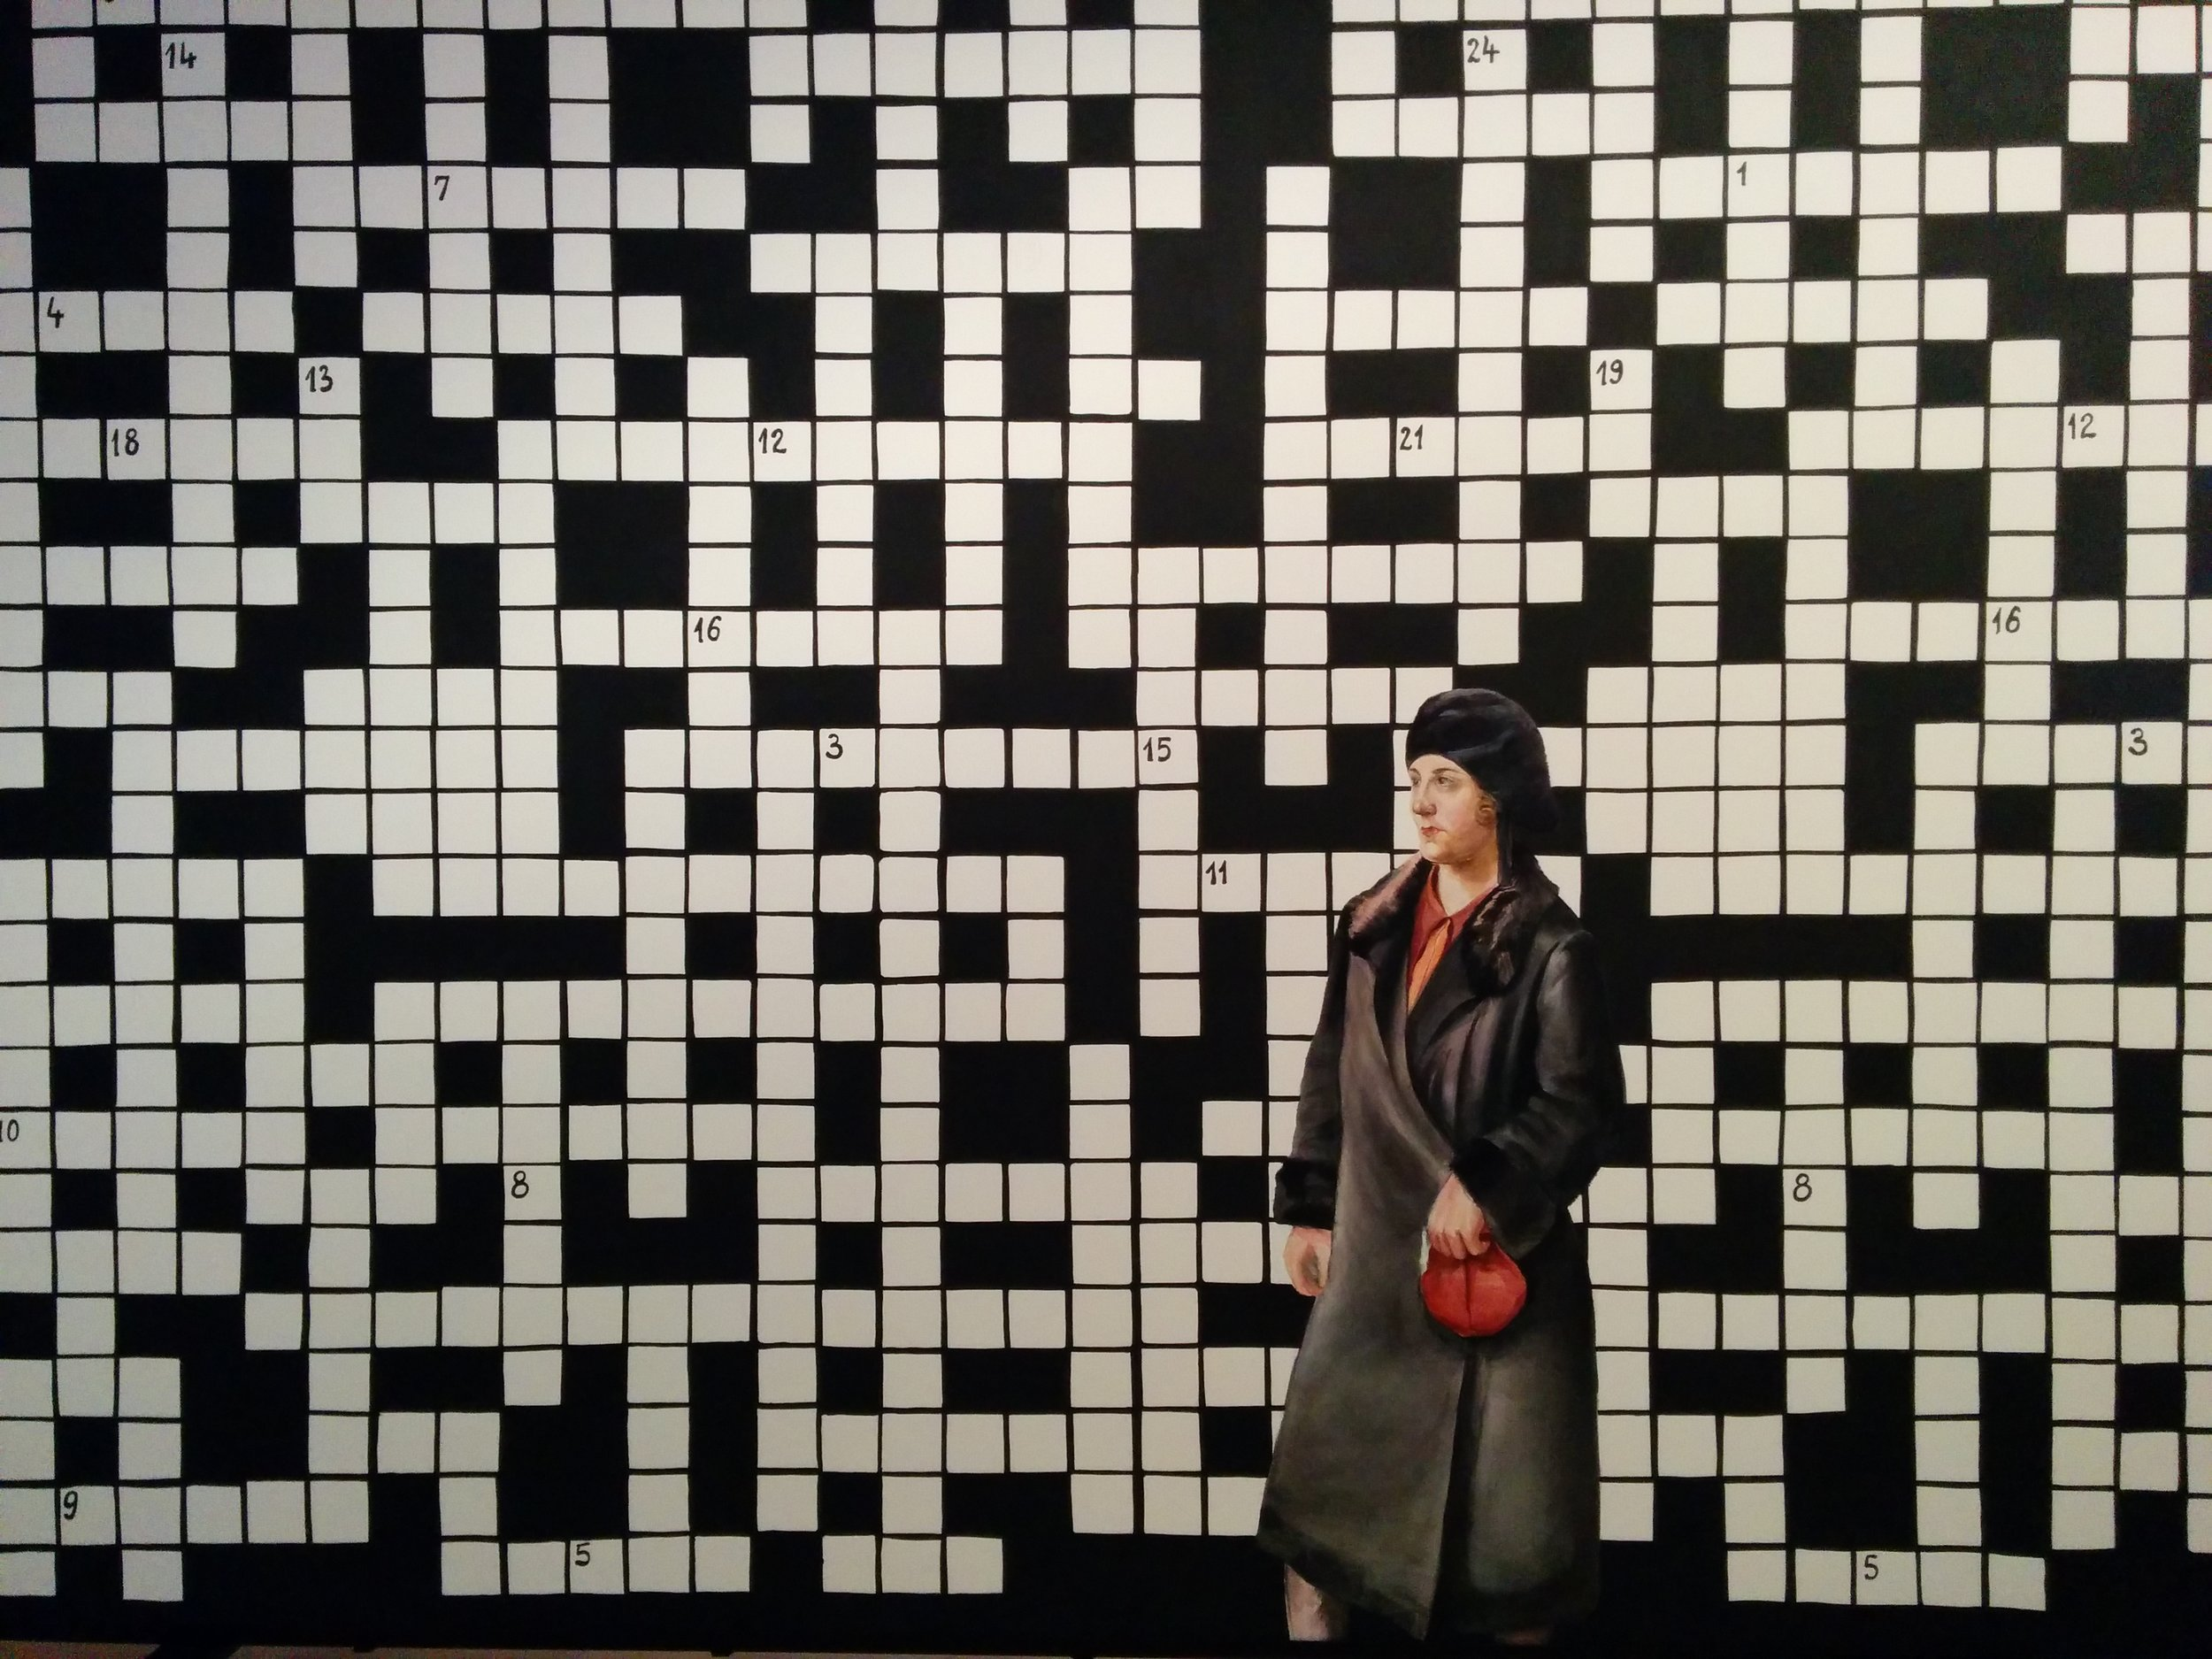 Crossword_puzzle_with_lady_in_black_coat.jpg